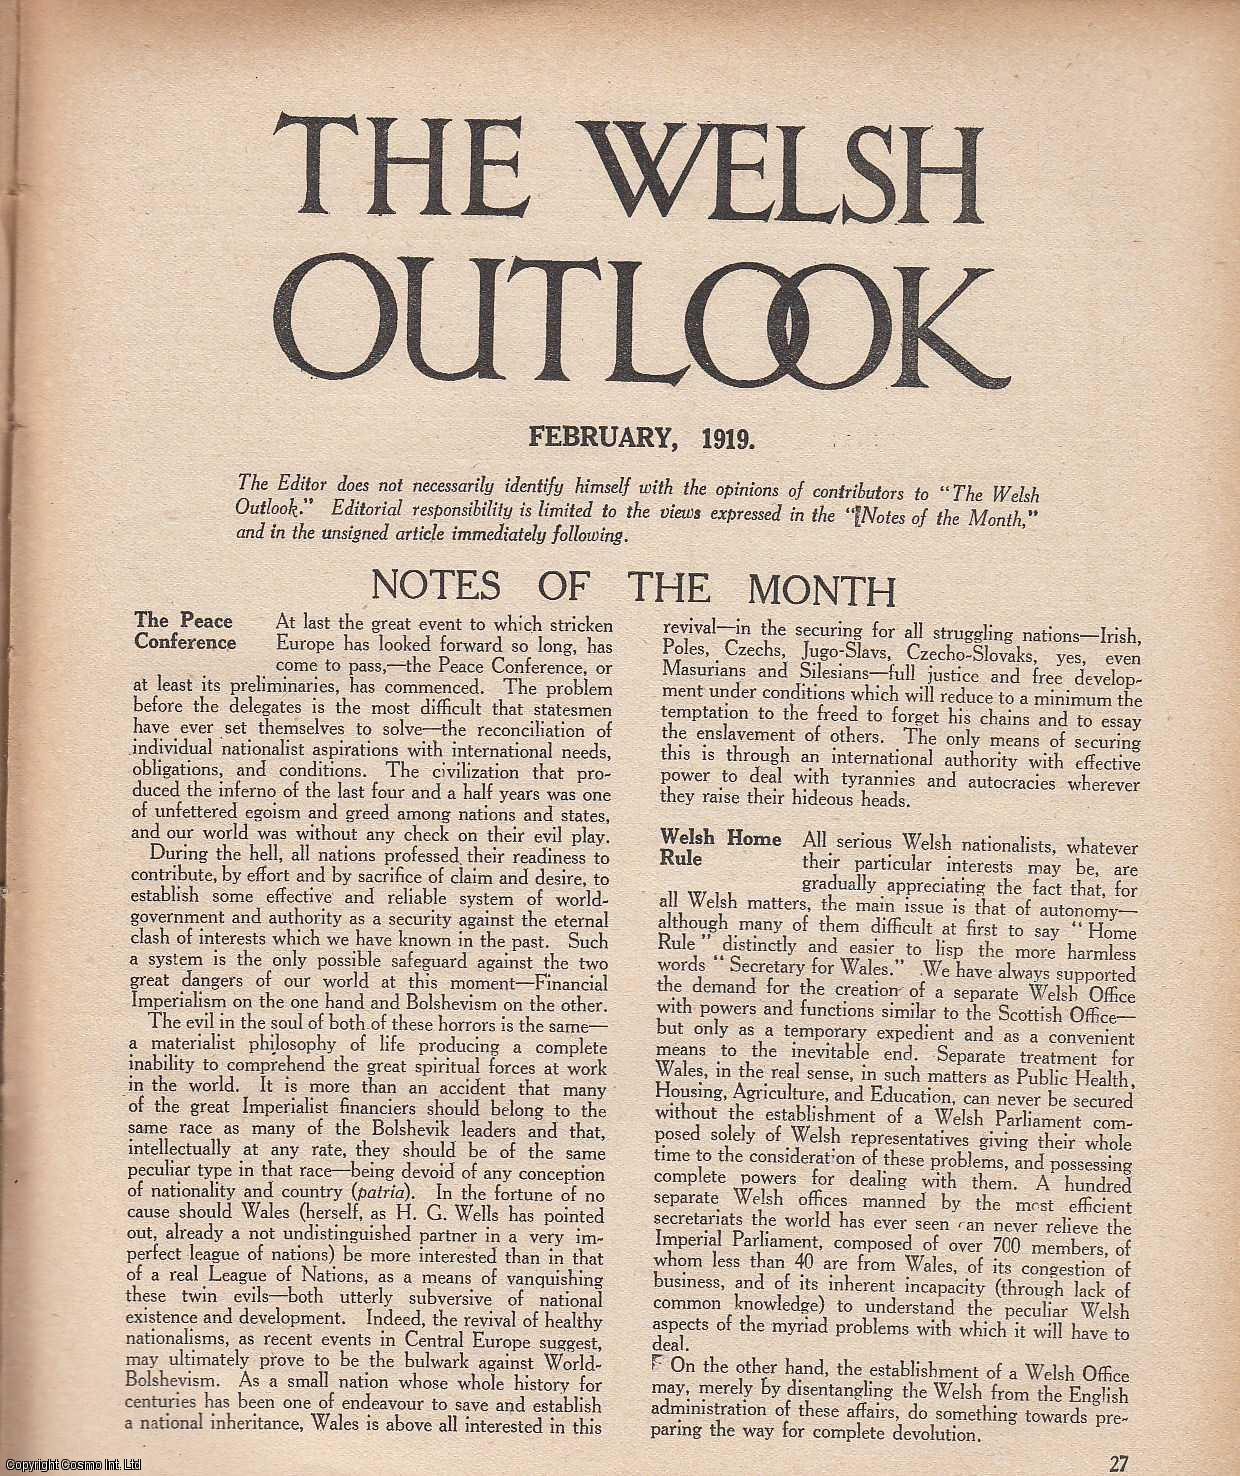 The Welsh Outlook. A Monthly Journal of National Social Progress. February, 1919. Contains; The Outlook: To Win Home Rule: Honor and Honours by Watkin Leyshon; A Working Alliance by Rev. J.H. Howard; A New Britain by Dr. Hugh Walker; A Rebel Poet by J. Arthur Price; Christian Re-Union by Rev. W.F. Phillips; A Campaign of Youth by Rev. Herbert Morgan; Bangor Changes by Principal Sir Harry Reichel; At The Colleges by A.O.R.; Pro Bono Publico., Thomas Jones (Editor)